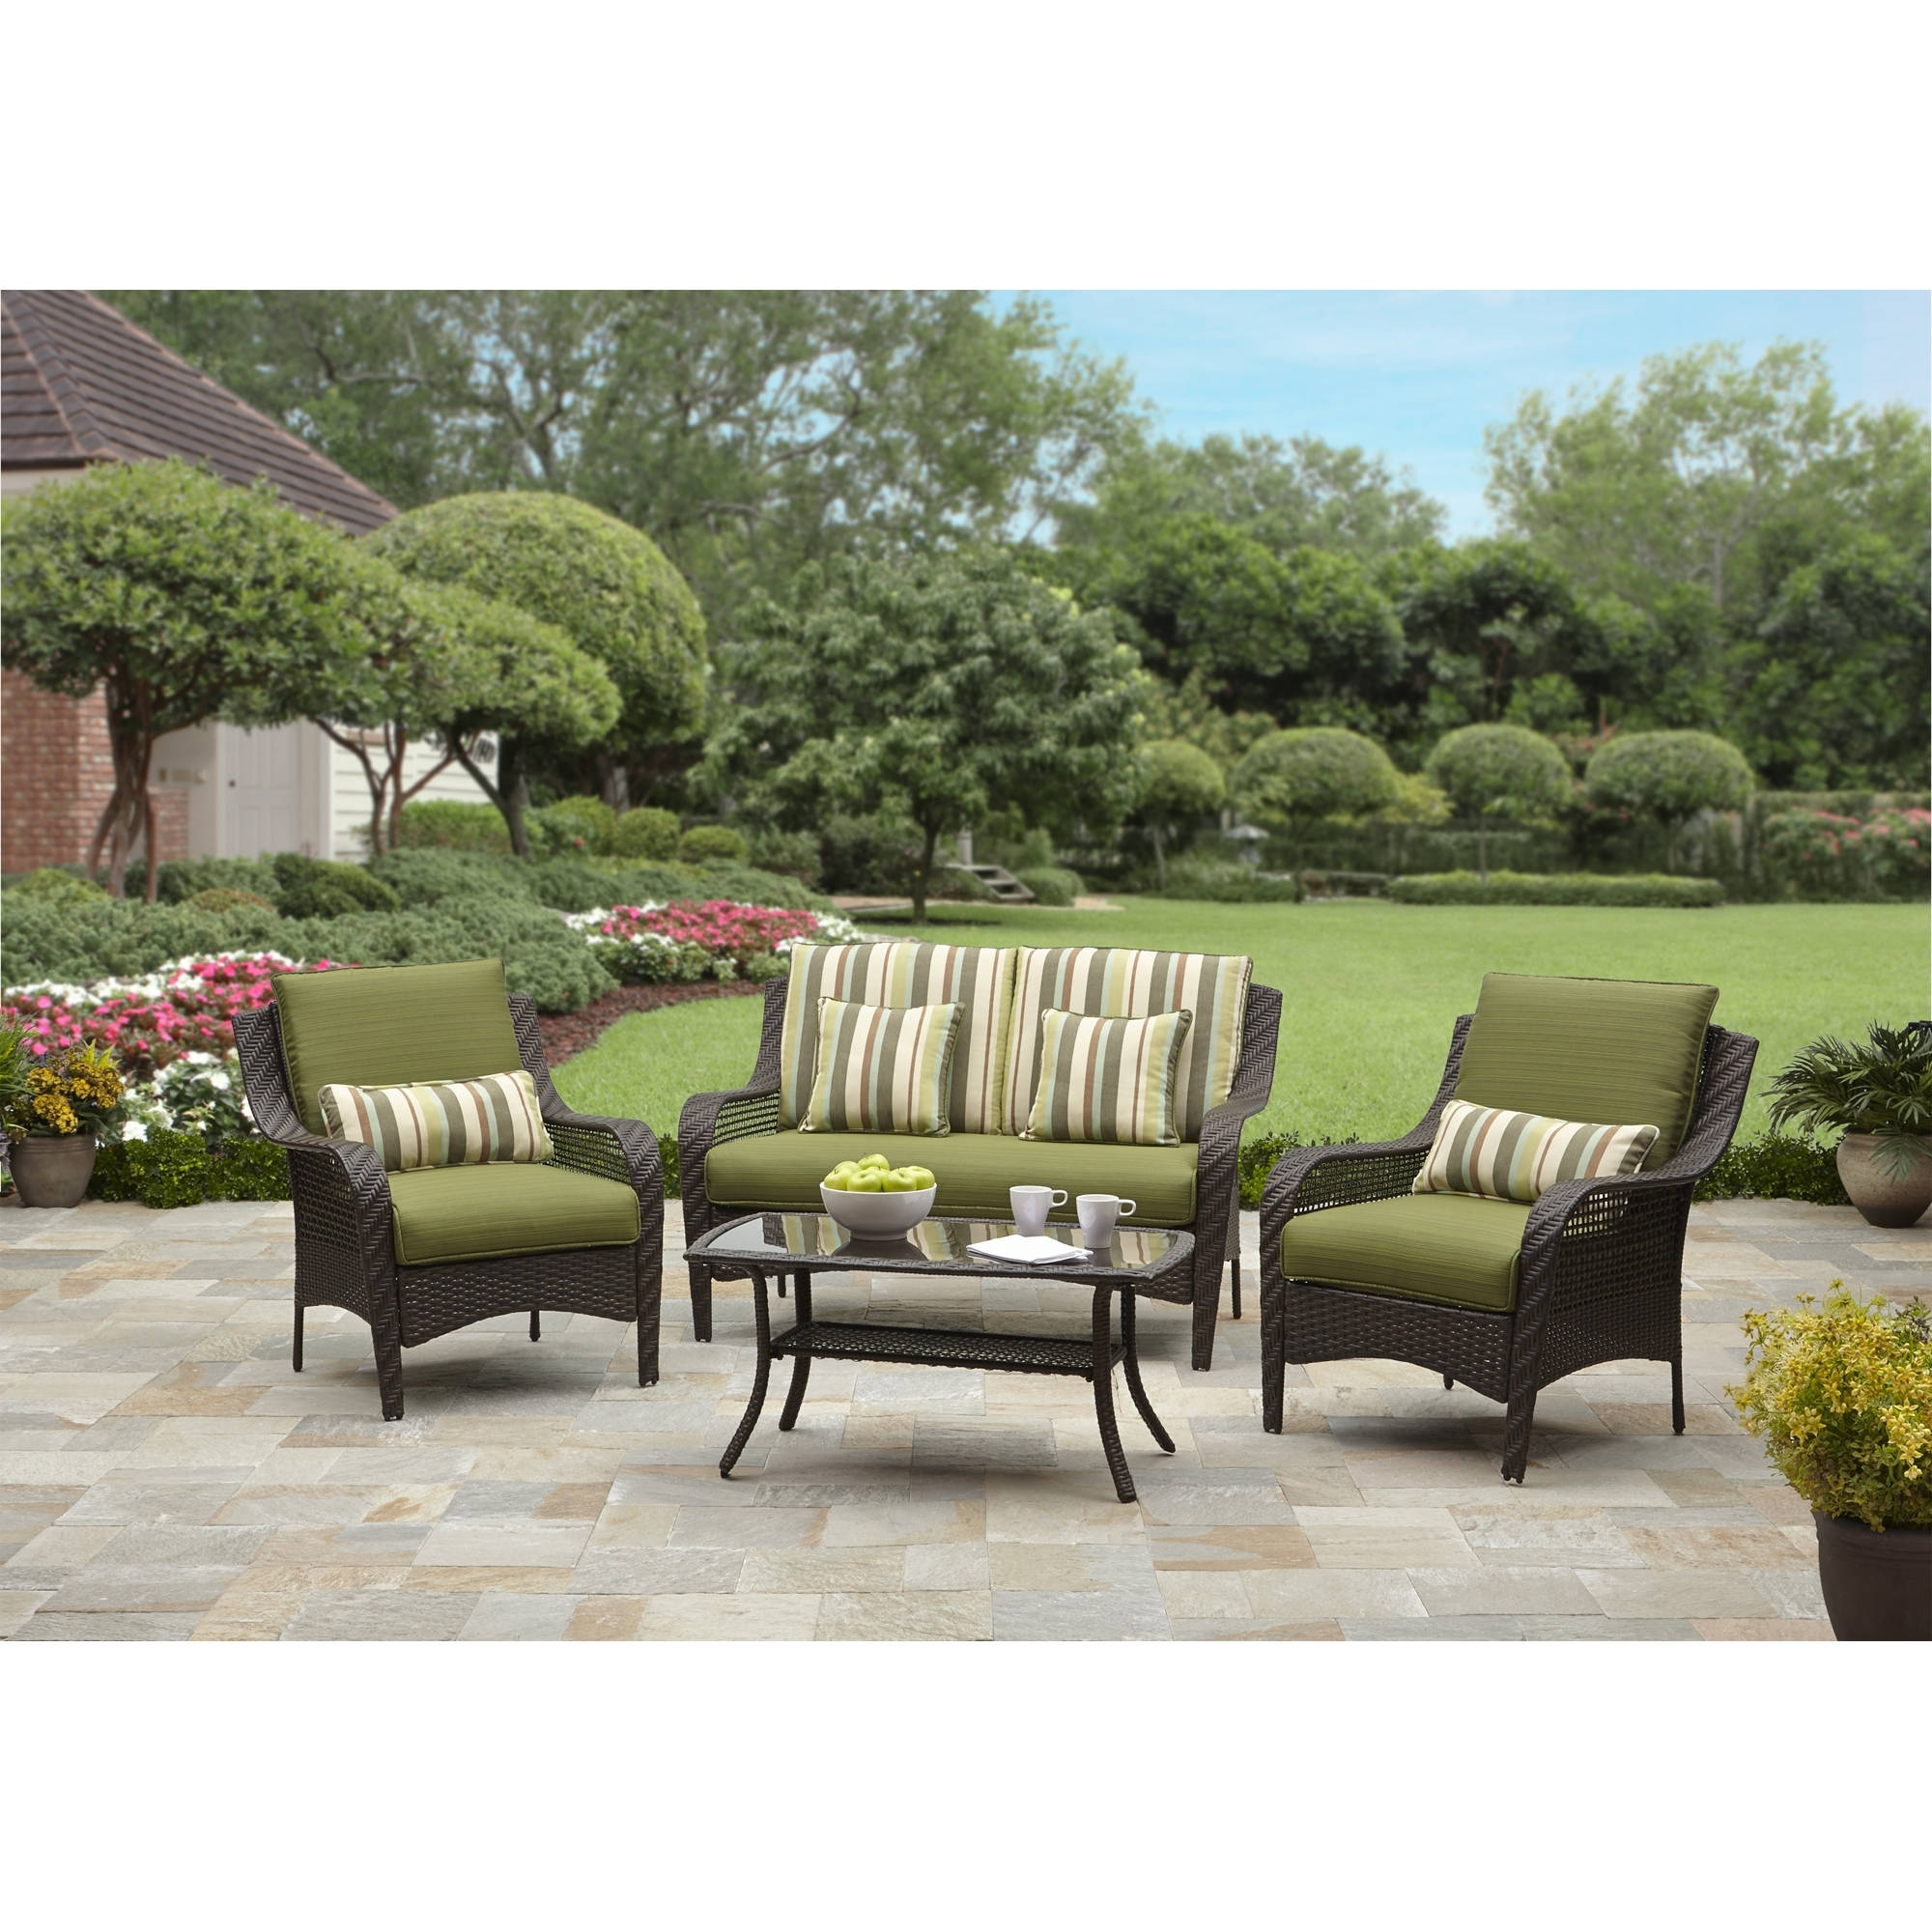 Best And Newest Walmart Patio Furniture Conversation Sets Pertaining To Better Homes And Gardens Amelia Cove 4 Piece Woven Patio (View 3 of 20)